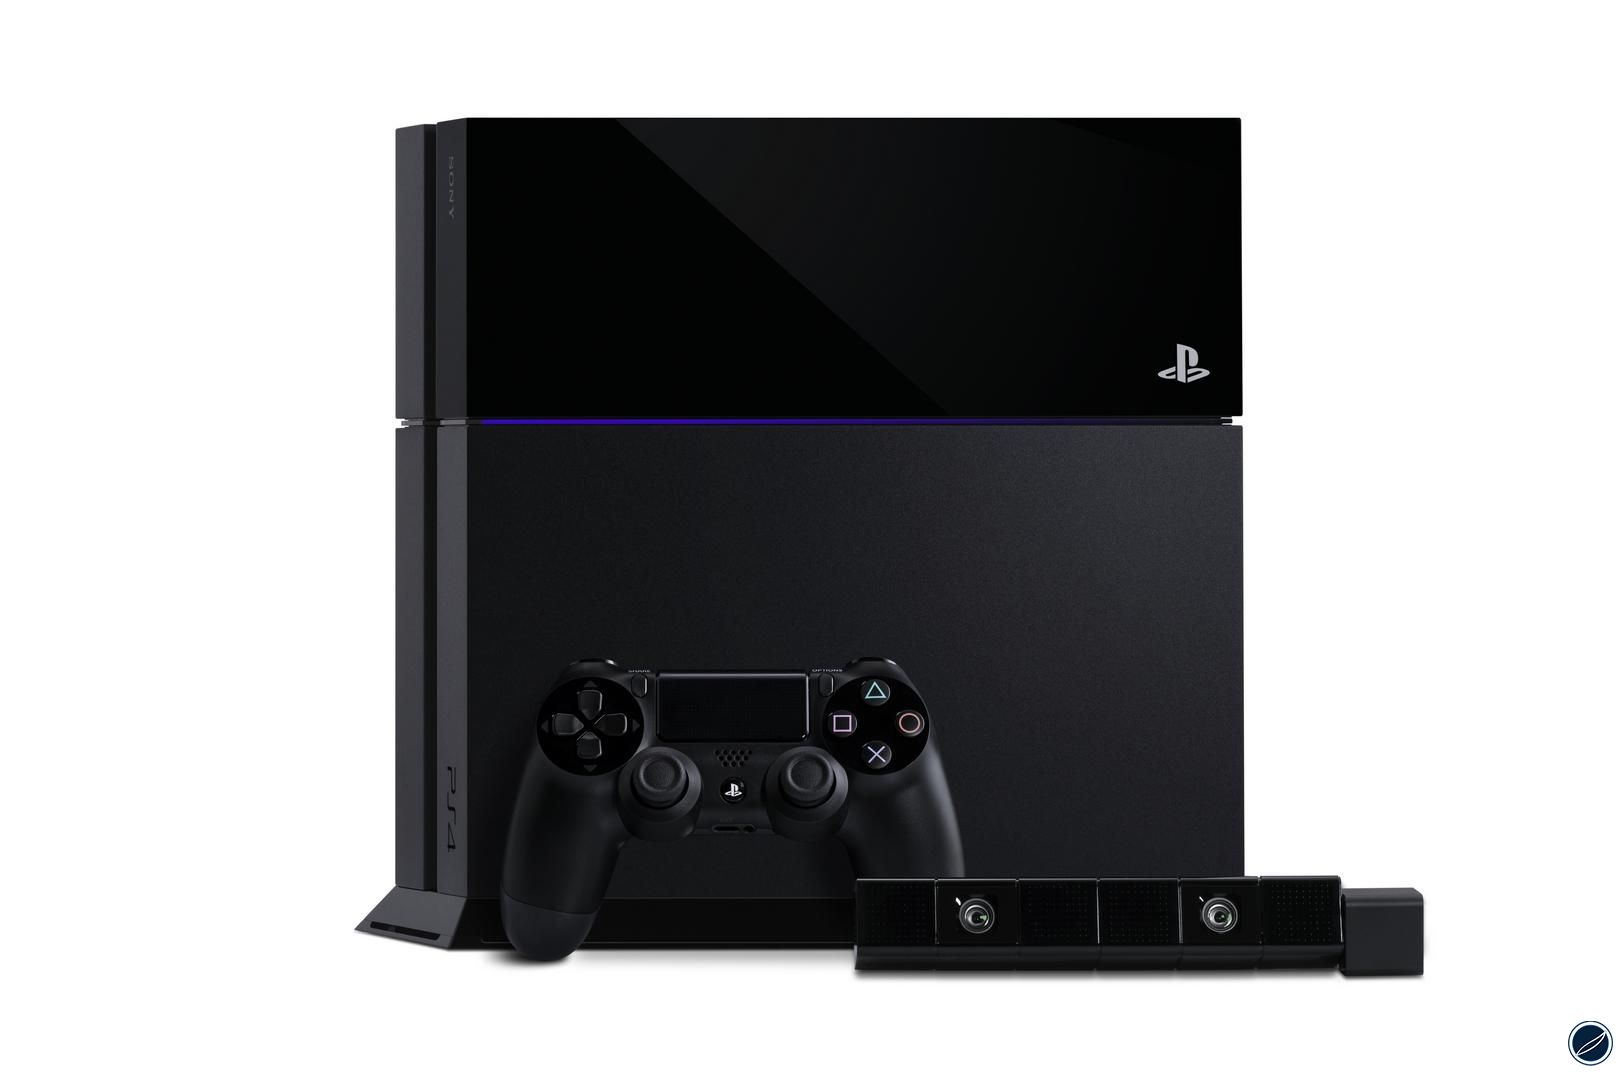 playstation-4_PS4_w_7233.jpg